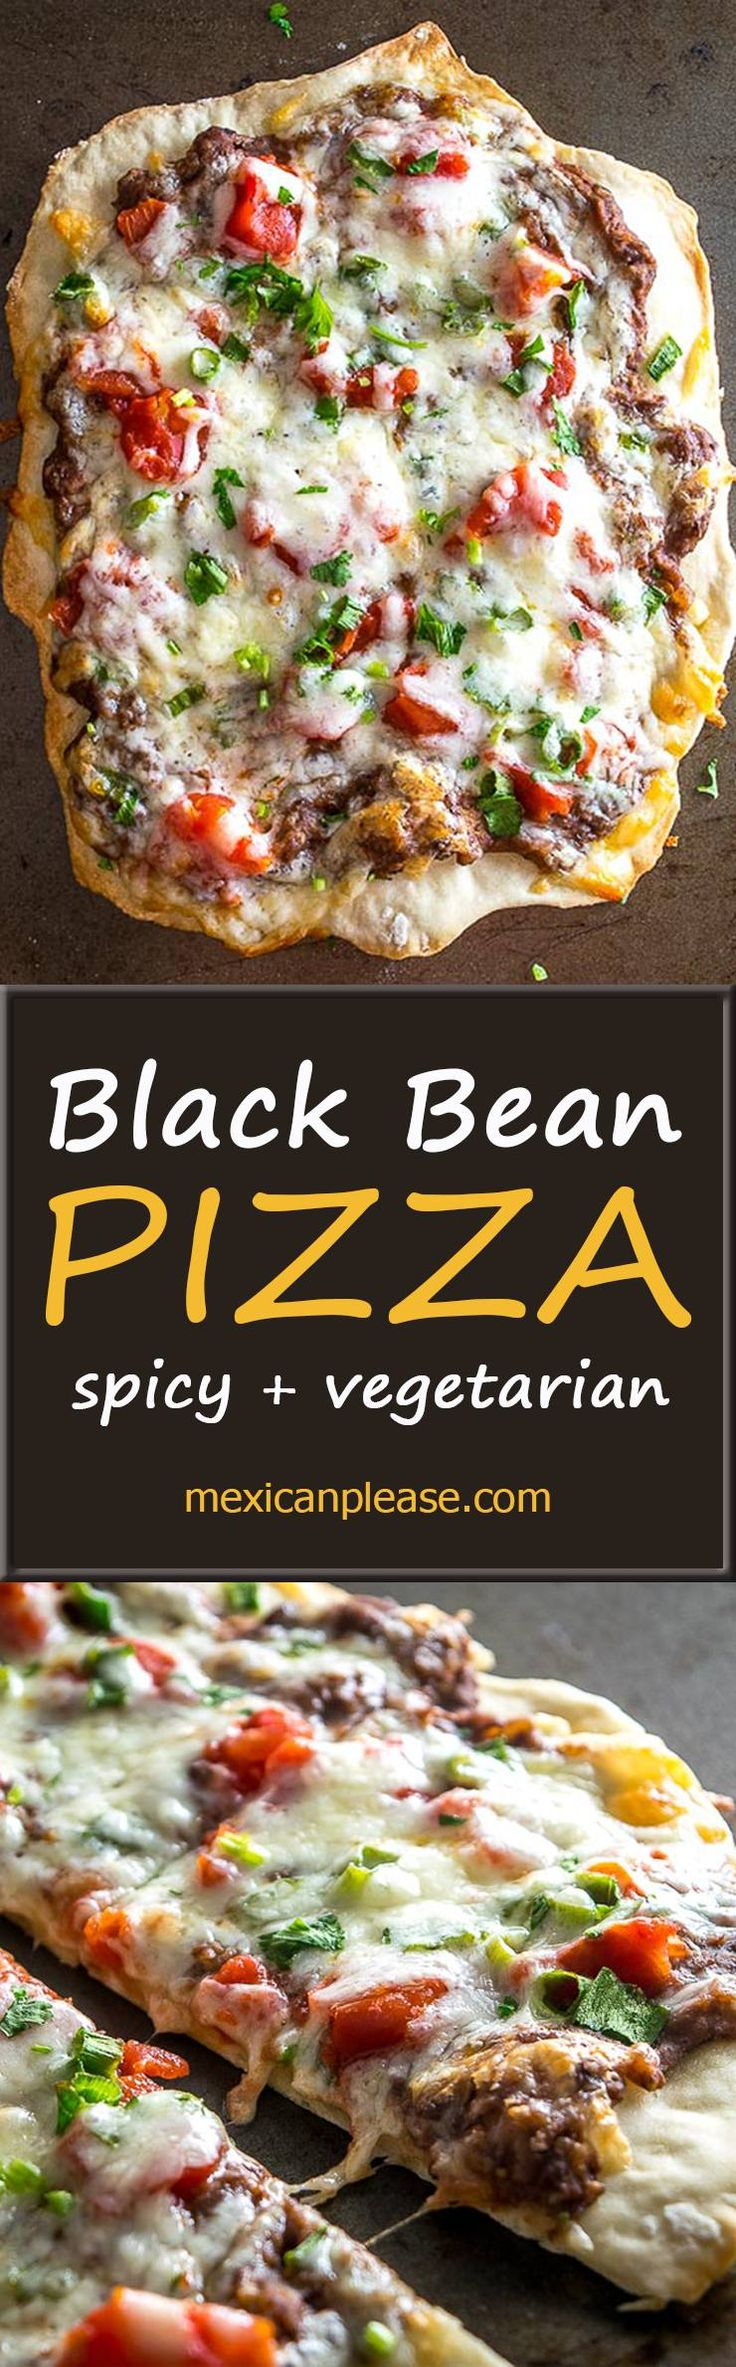 This Spicy Black Bean Pizza relies on a delicious black bean puree and a thin layer of garlic oil to create a vegetarian delight.  Easy to make too!  mexicanplease.com